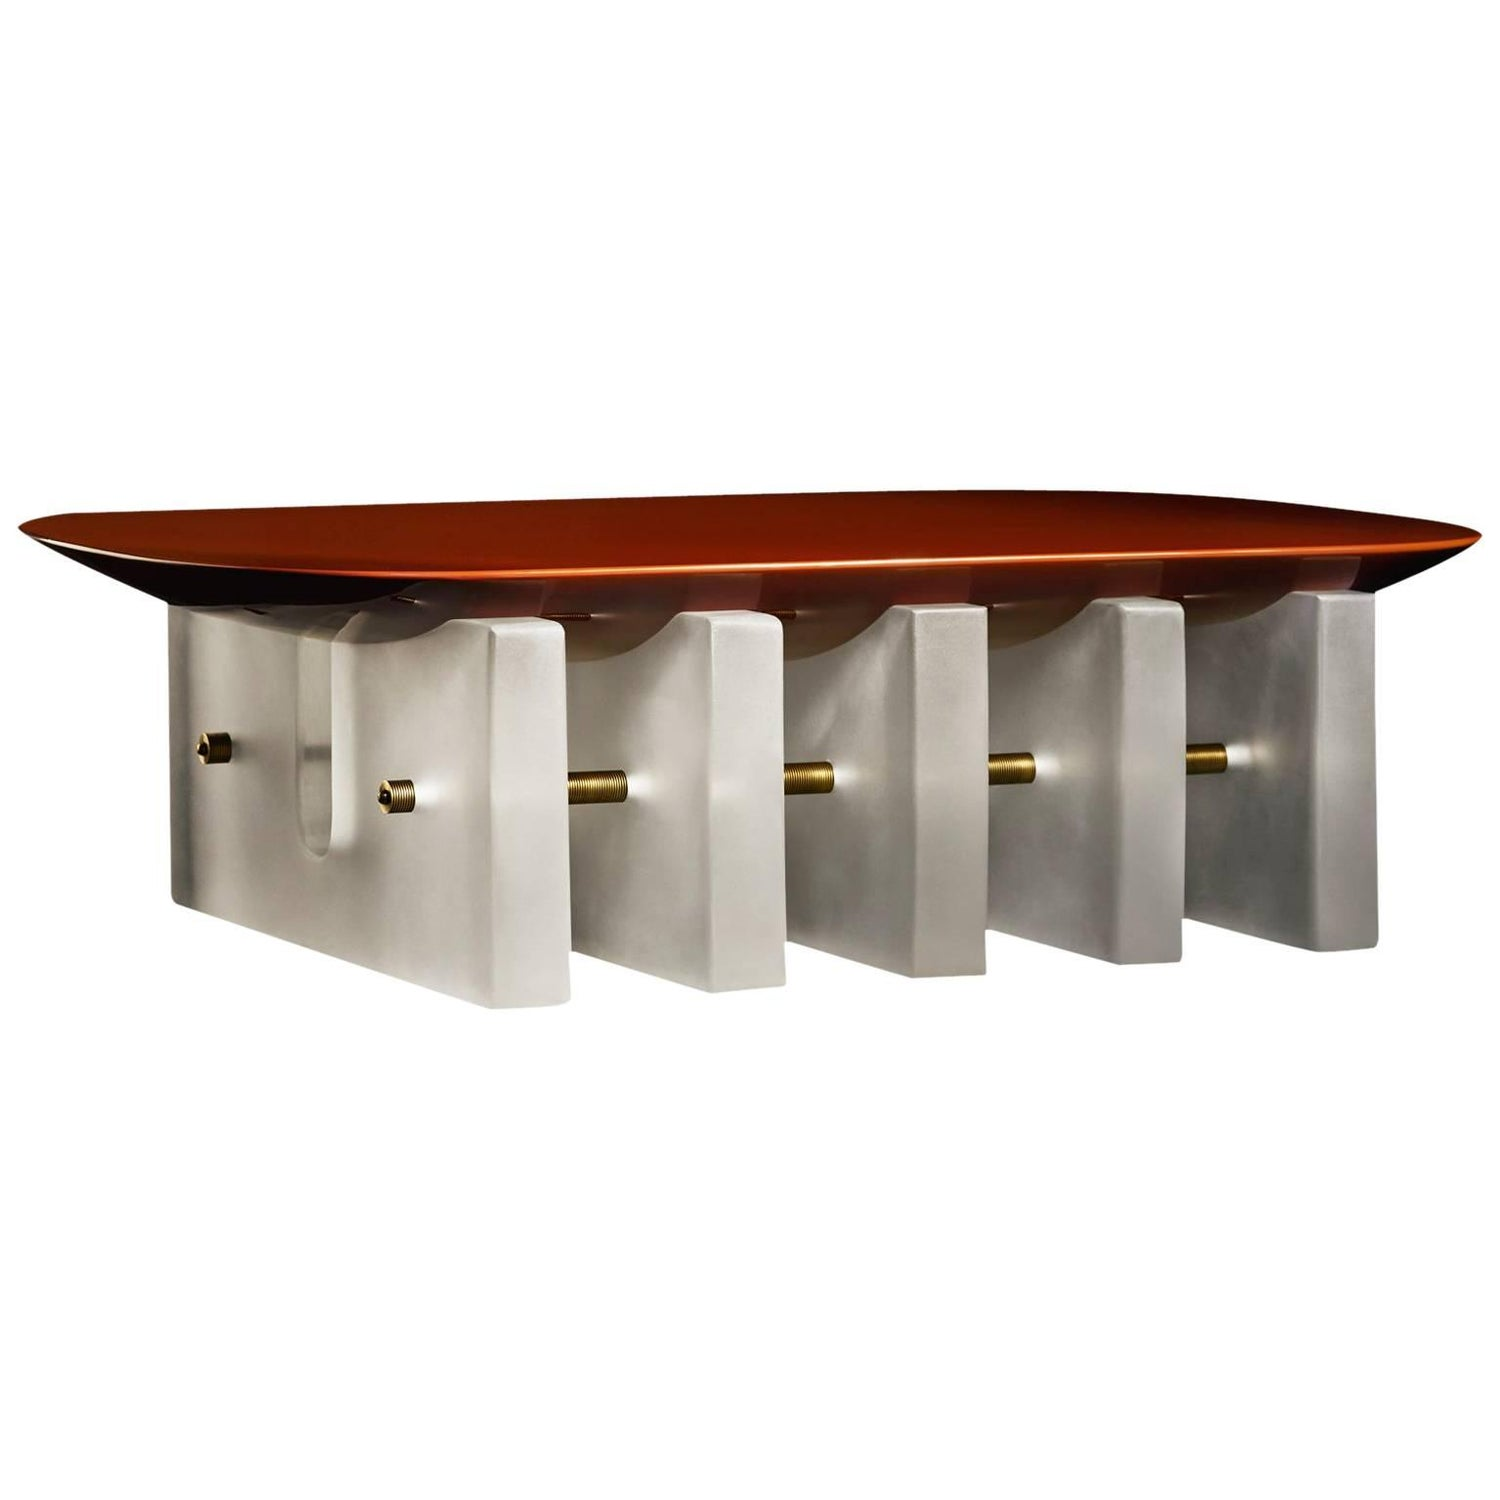 Lacquer Coffee and Cocktail Tables 257 For Sale at 1stdibs